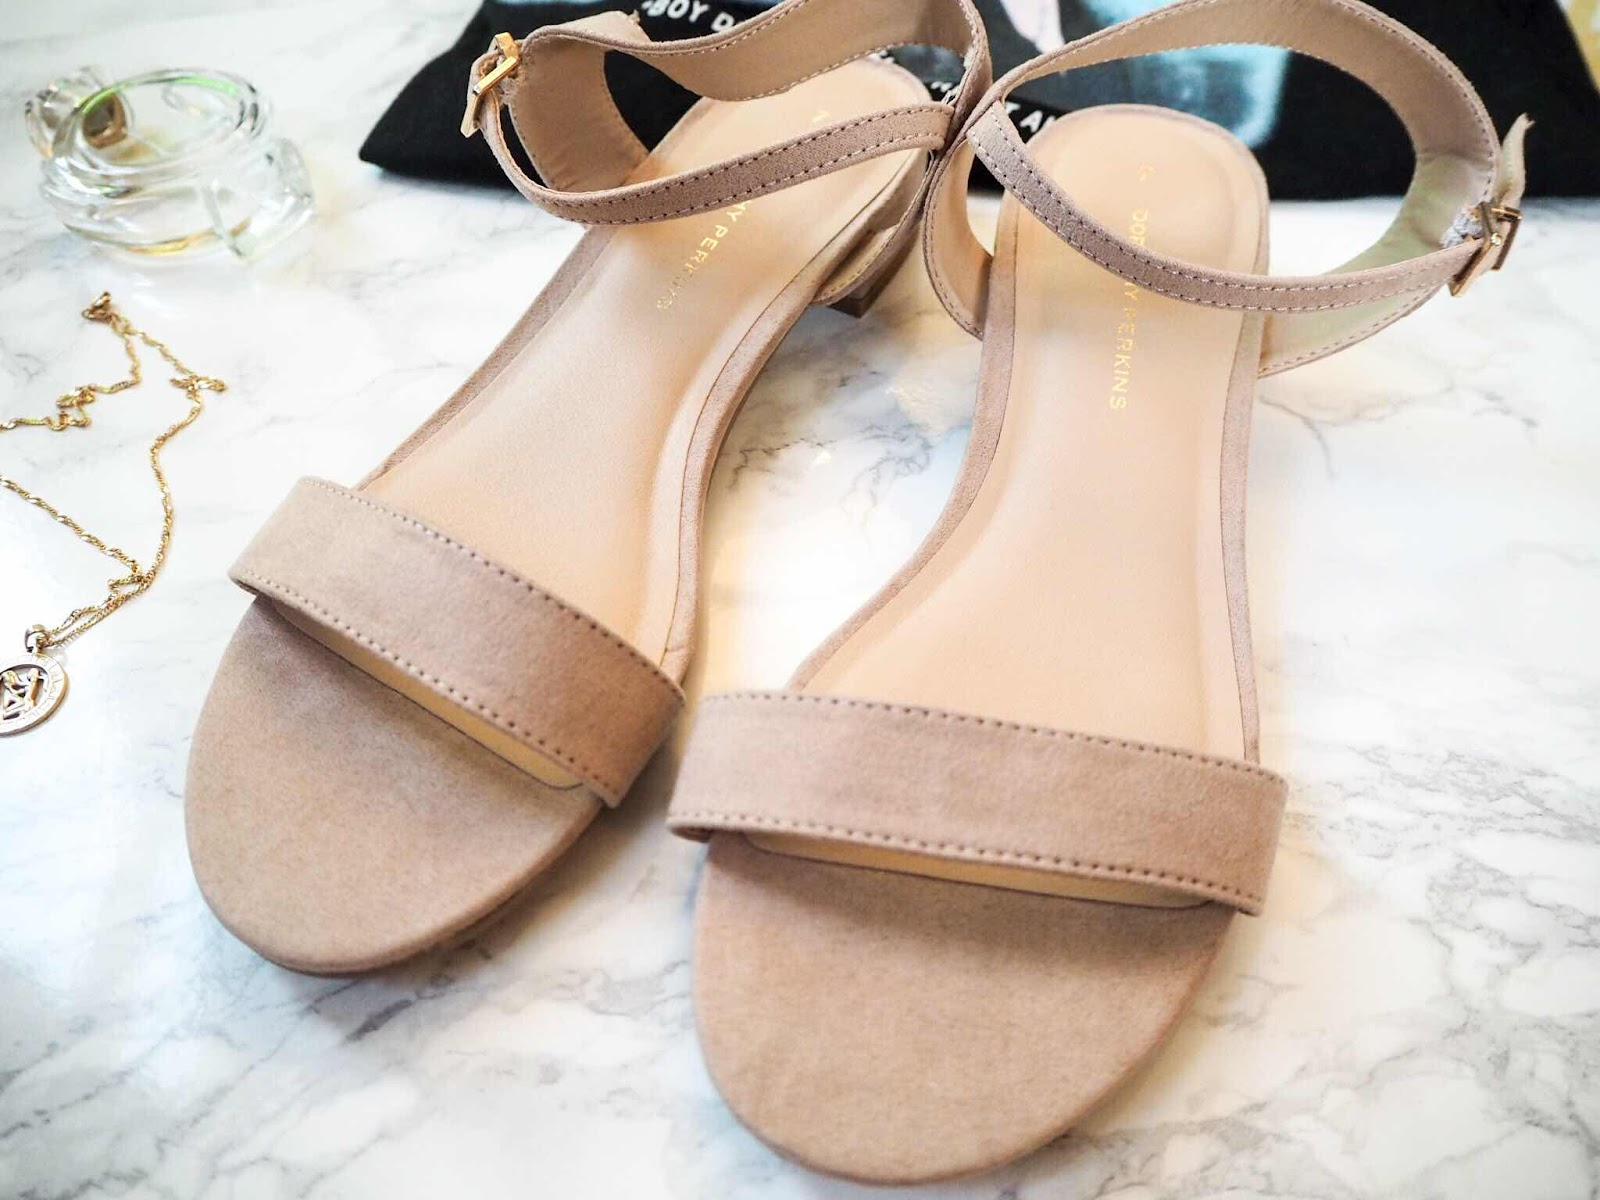 dorothy-perkins-nude-spirit-block-heel-sandals-fashion-blog